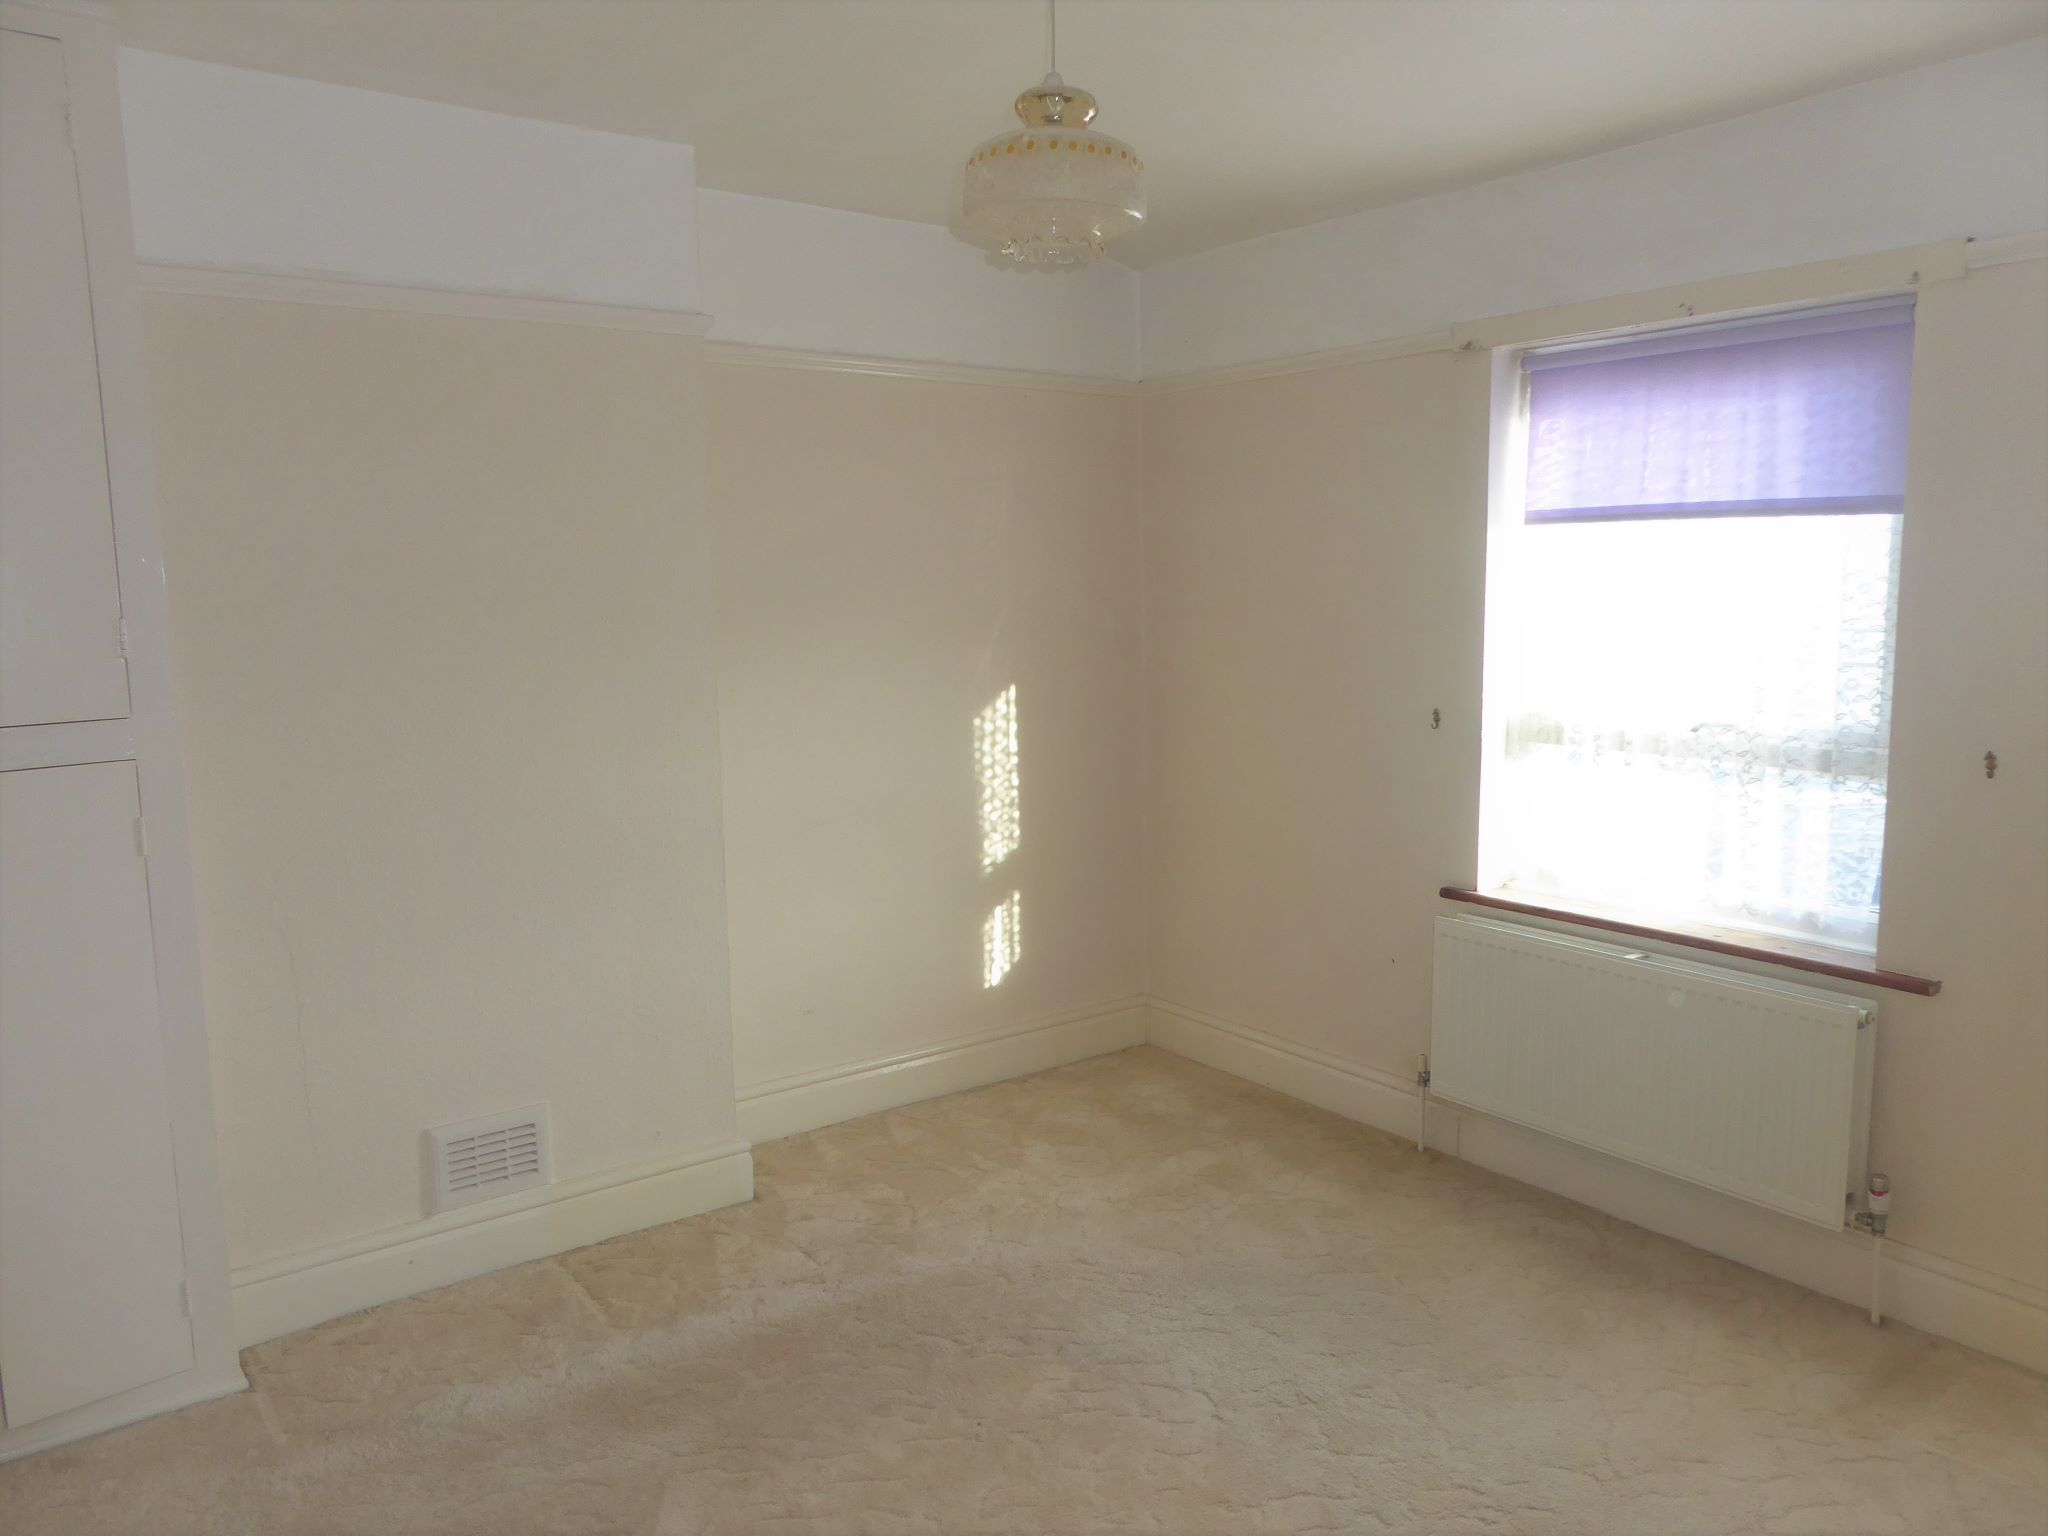 3 bedroom end terraced house SSTC in Abergele - Photograph 6